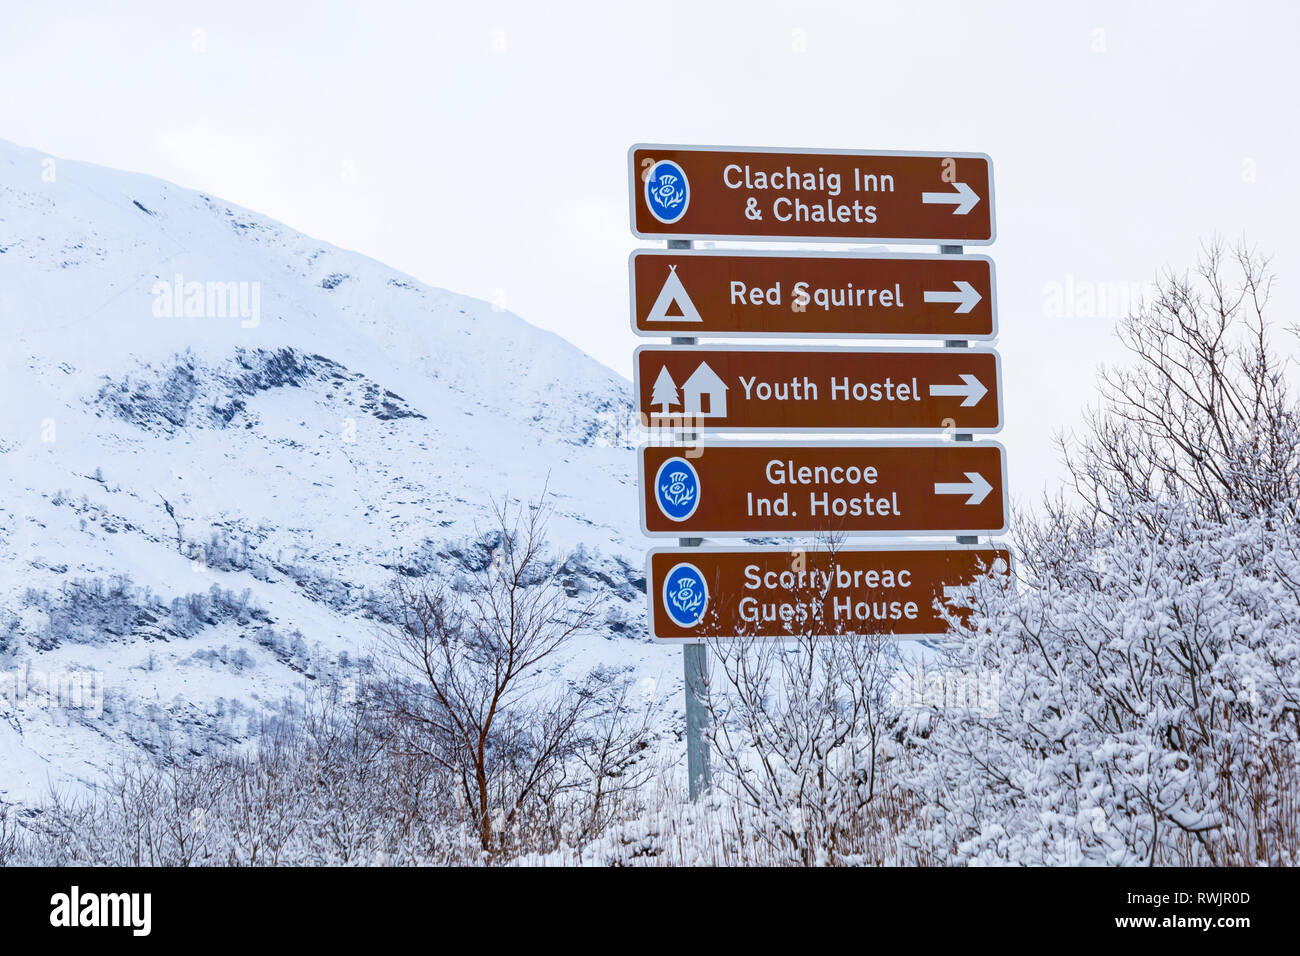 Directions road signs in Glencoe on a cold winter day with snow at Rannoch Moor, Glencoe, Argyll, Scotland - Stock Image